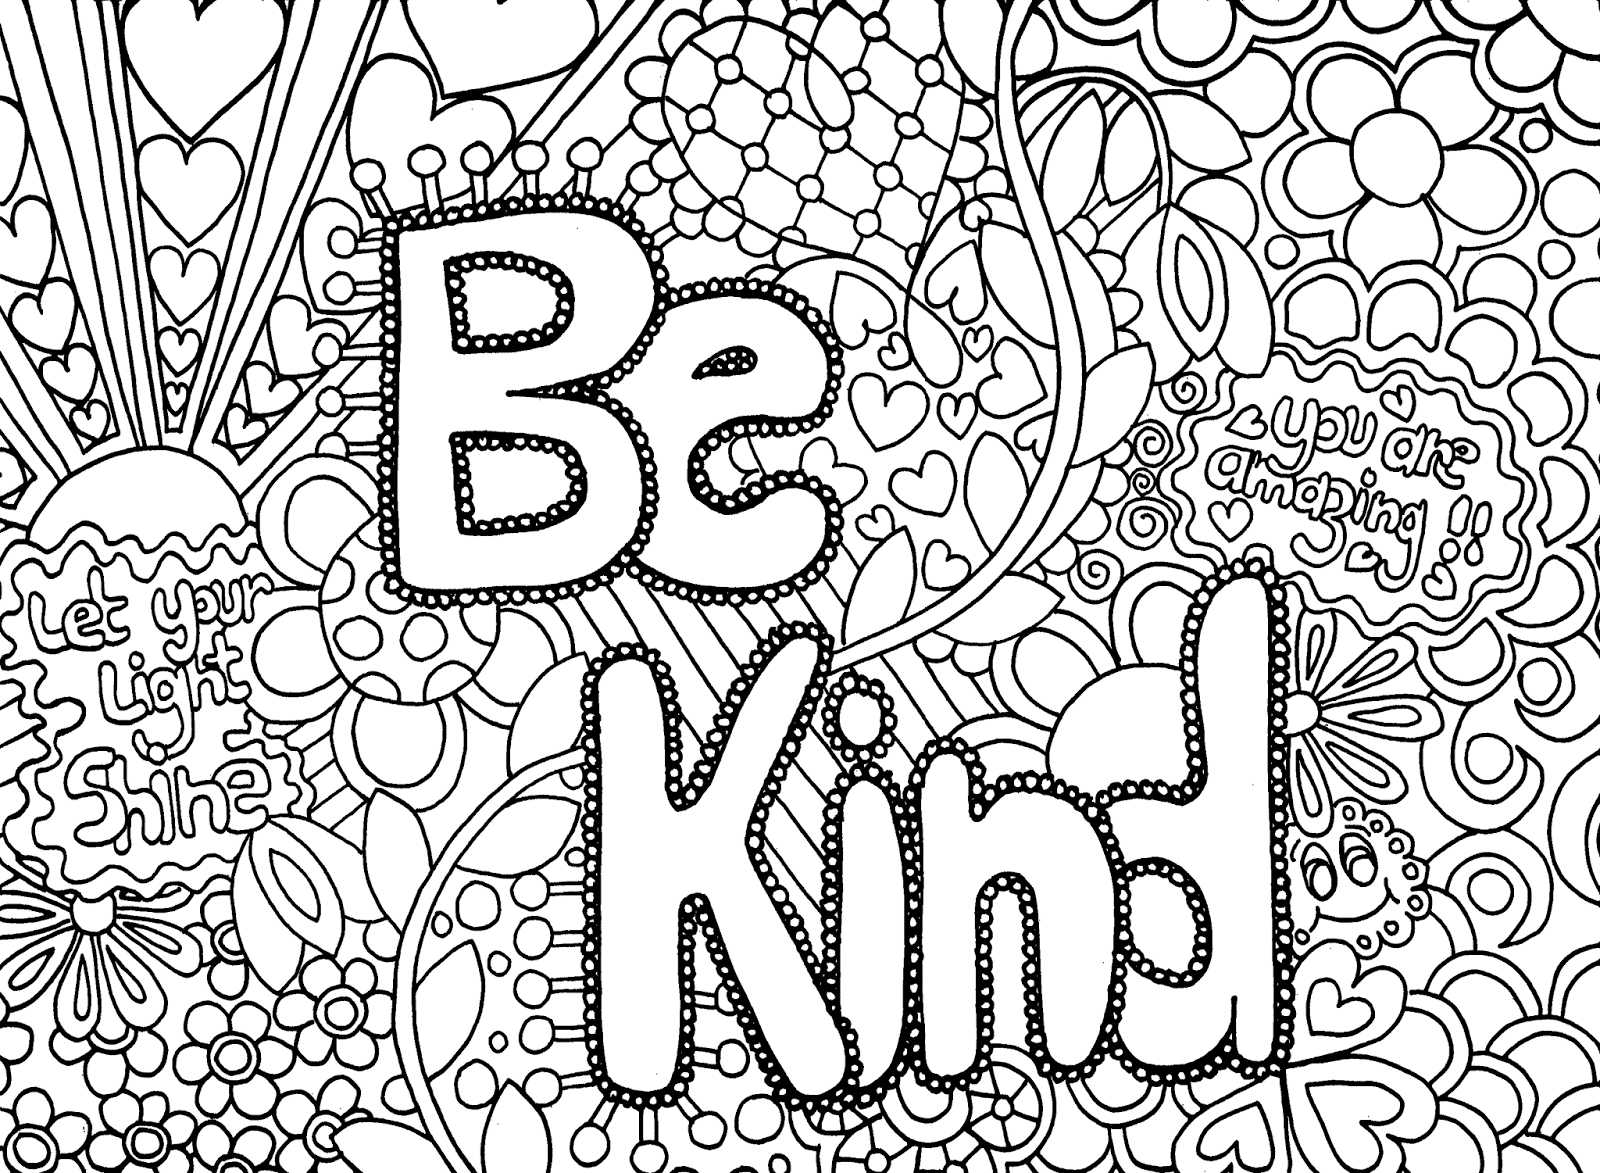 Free coloring pages for young adults - Difficult Hard Coloring Pages Printable Printable Coloring Pages Sheets For Kids Get The Latest Free Difficult Hard Coloring Pages Printable Images